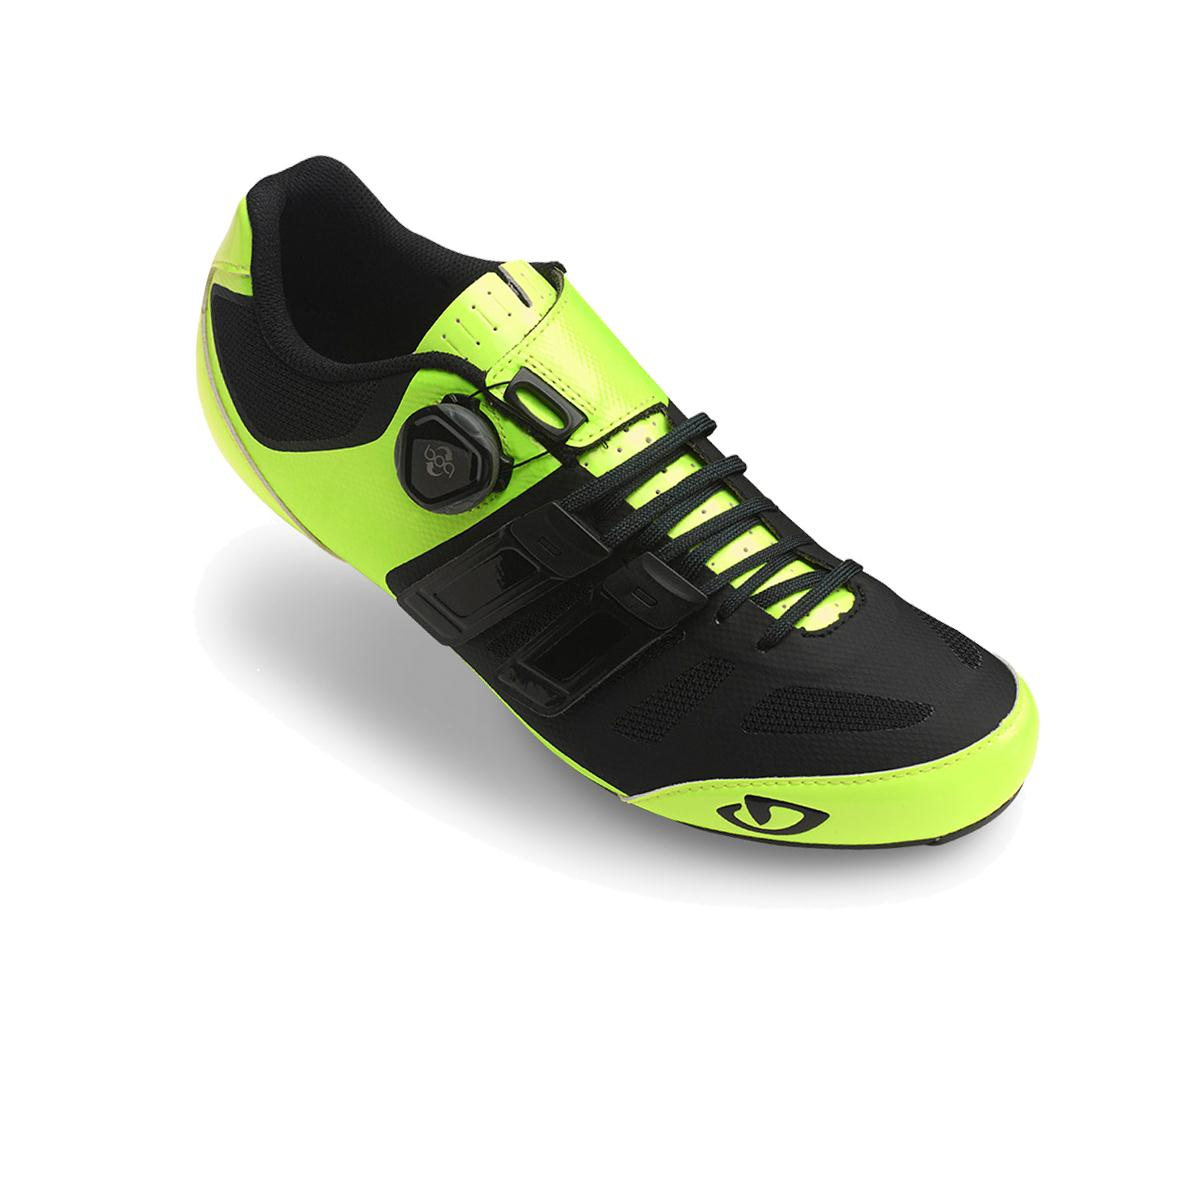 GIRO Sentrie Techlace Road Cycling Shoes 2018 Highlight Yellow/Black 40